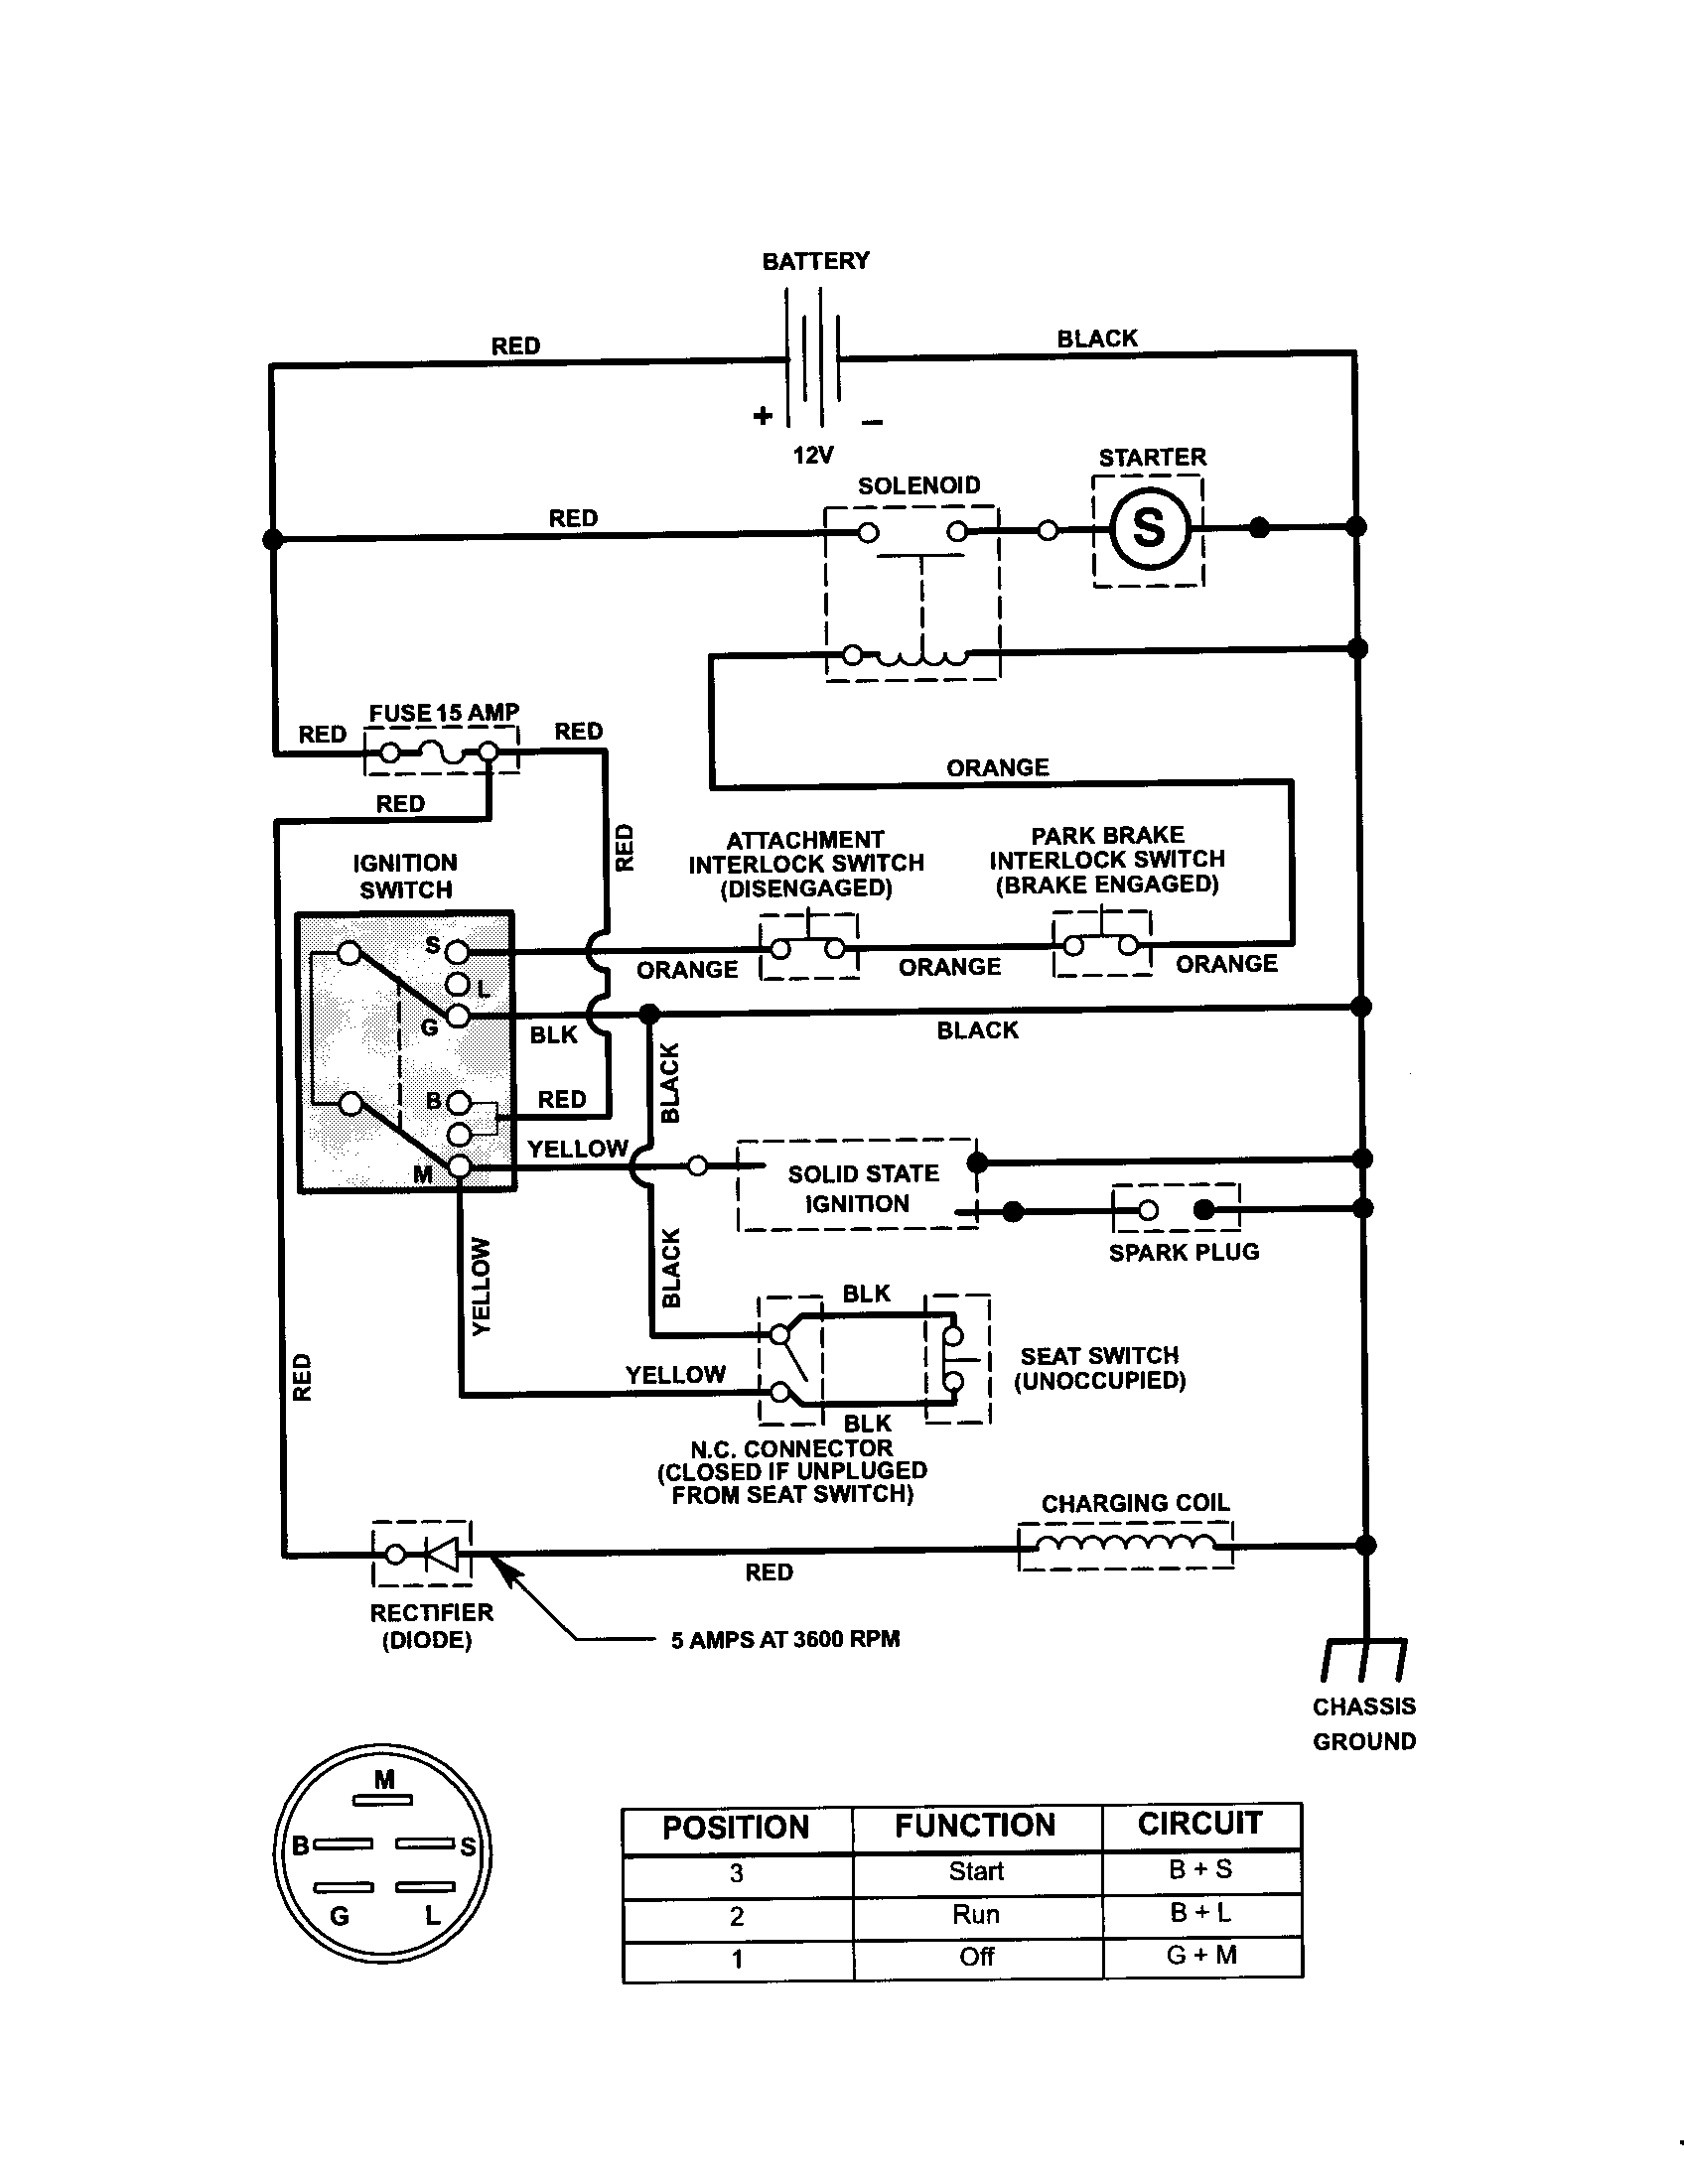 1b4fc64e2bcb7b381848942ff5c84dce craftsman riding mower electrical diagram pictures of craftsman wiring diagram for riding lawn mower at alyssarenee.co